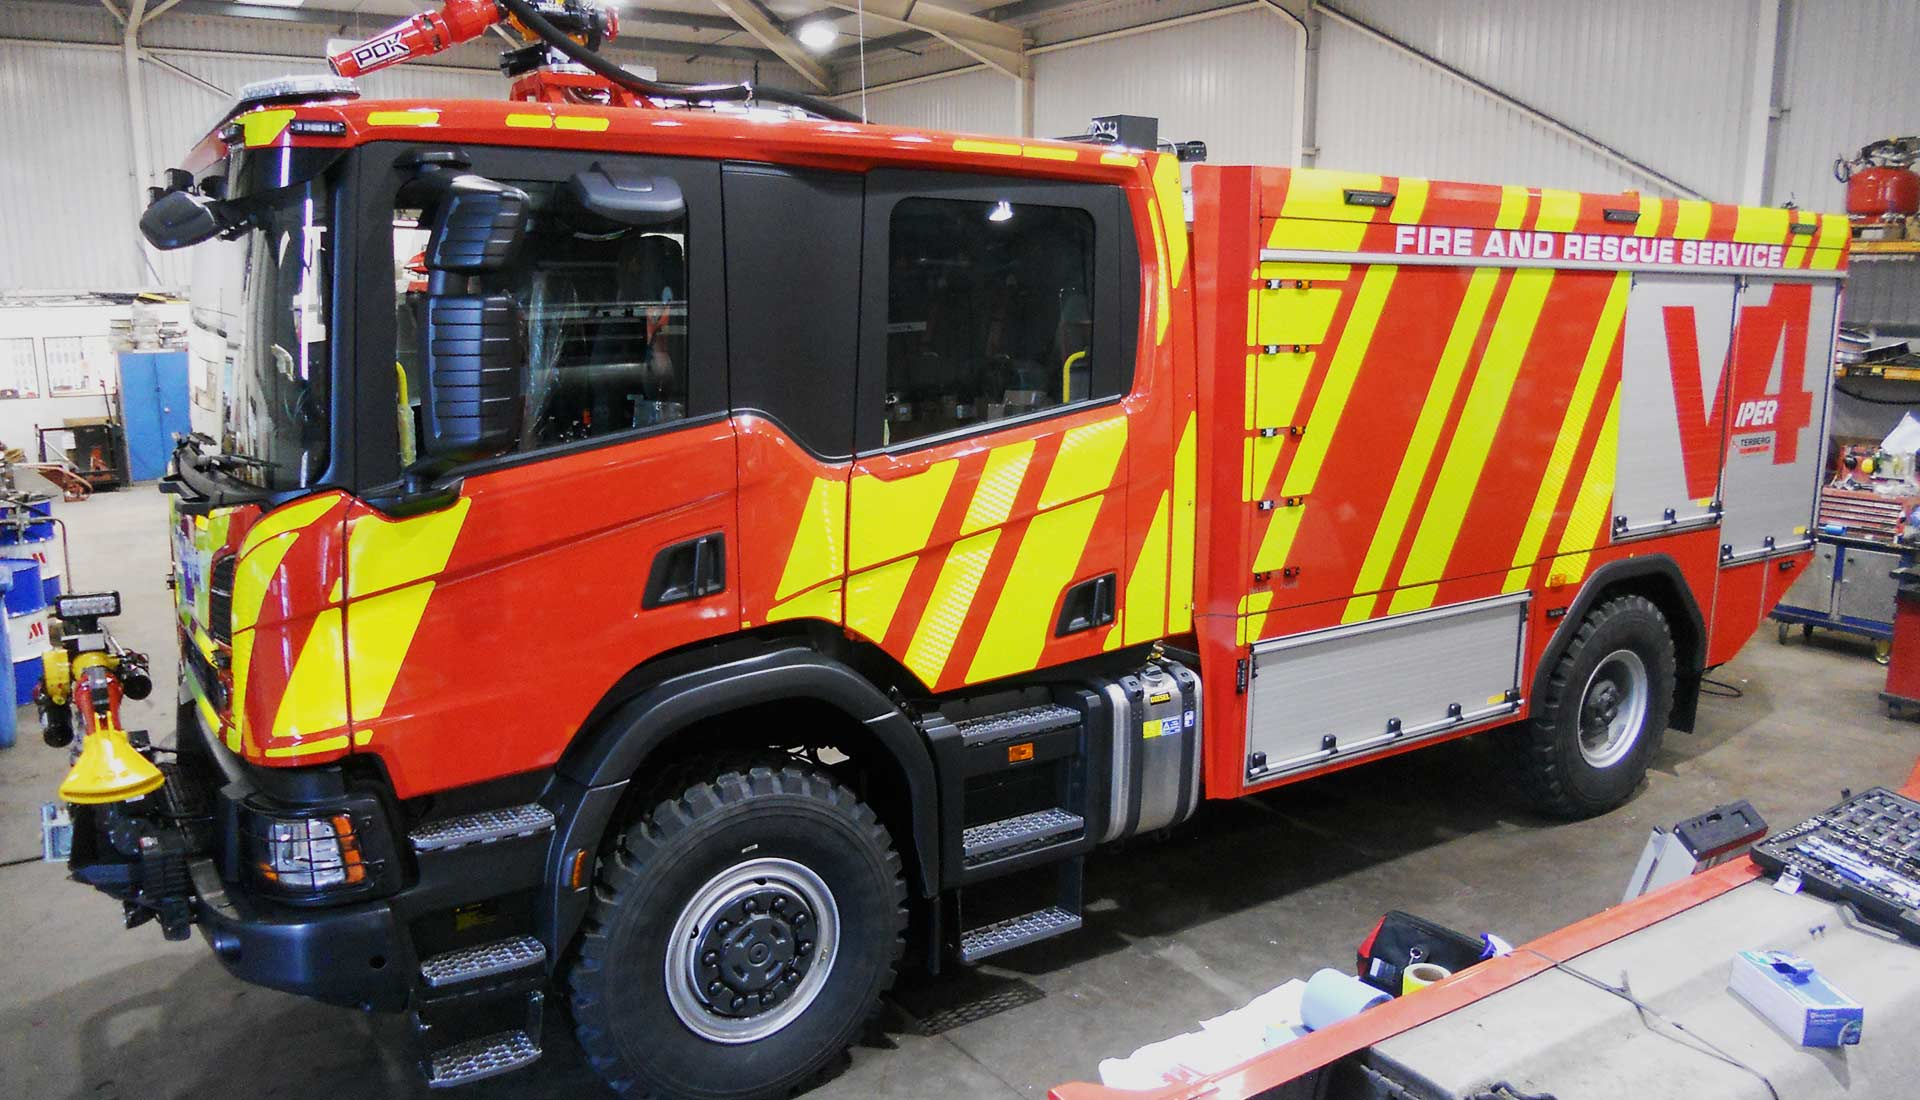 They have developed some Ground Support Equipment for sale that have to do with fire operations post thumbnail image